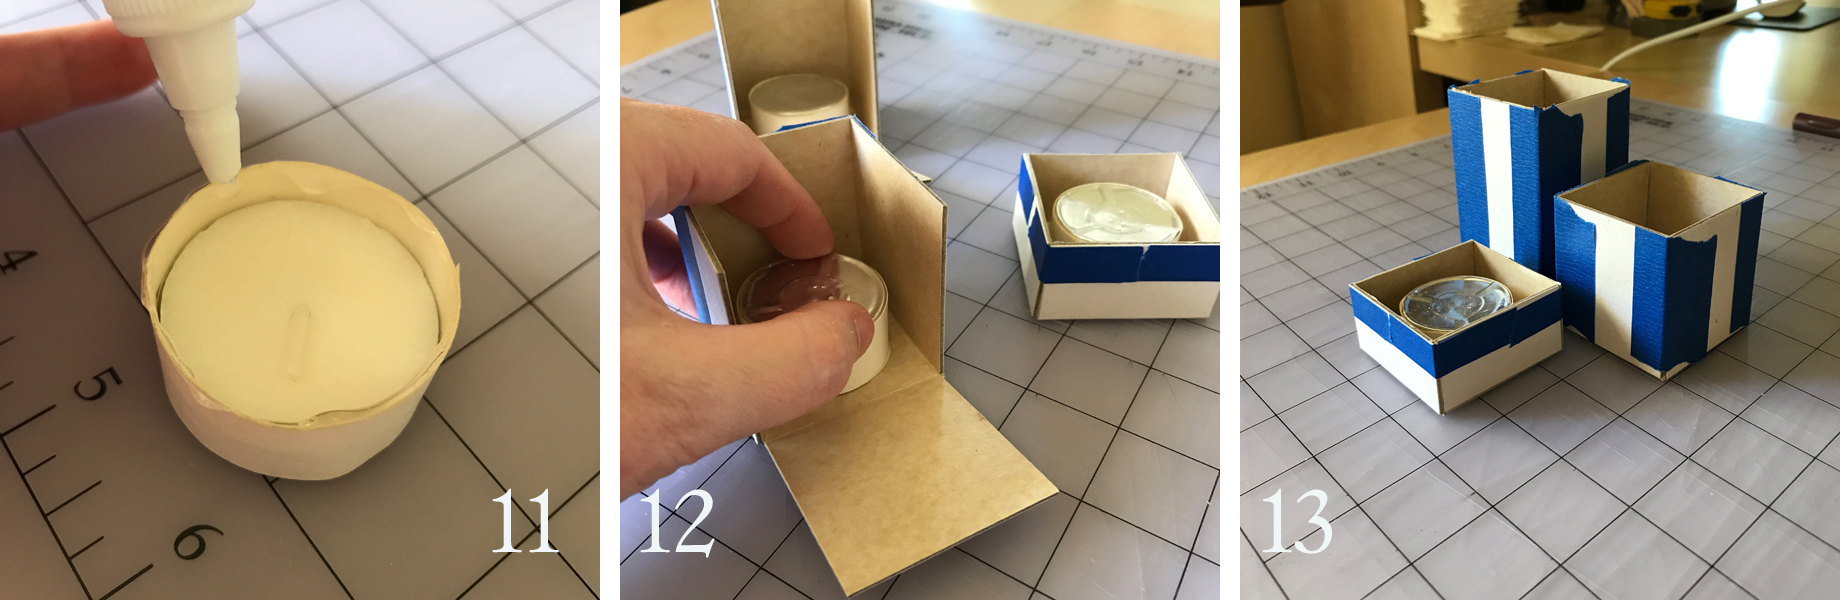 11. Run a bead of craft glue around the edge of the wrapped tea light.  12. Set it glue-side down inside the form. Repeat for the other candles if you're creating more than one.  13. After the glue has had a chance to set, tape up the open edges. Note, handle the forms lightly at this point. You don't want to disturb the adhesion of the glue or coax the waxed paper off the cardboard. These elements are intentionally adhered minimally for ease of removal later.